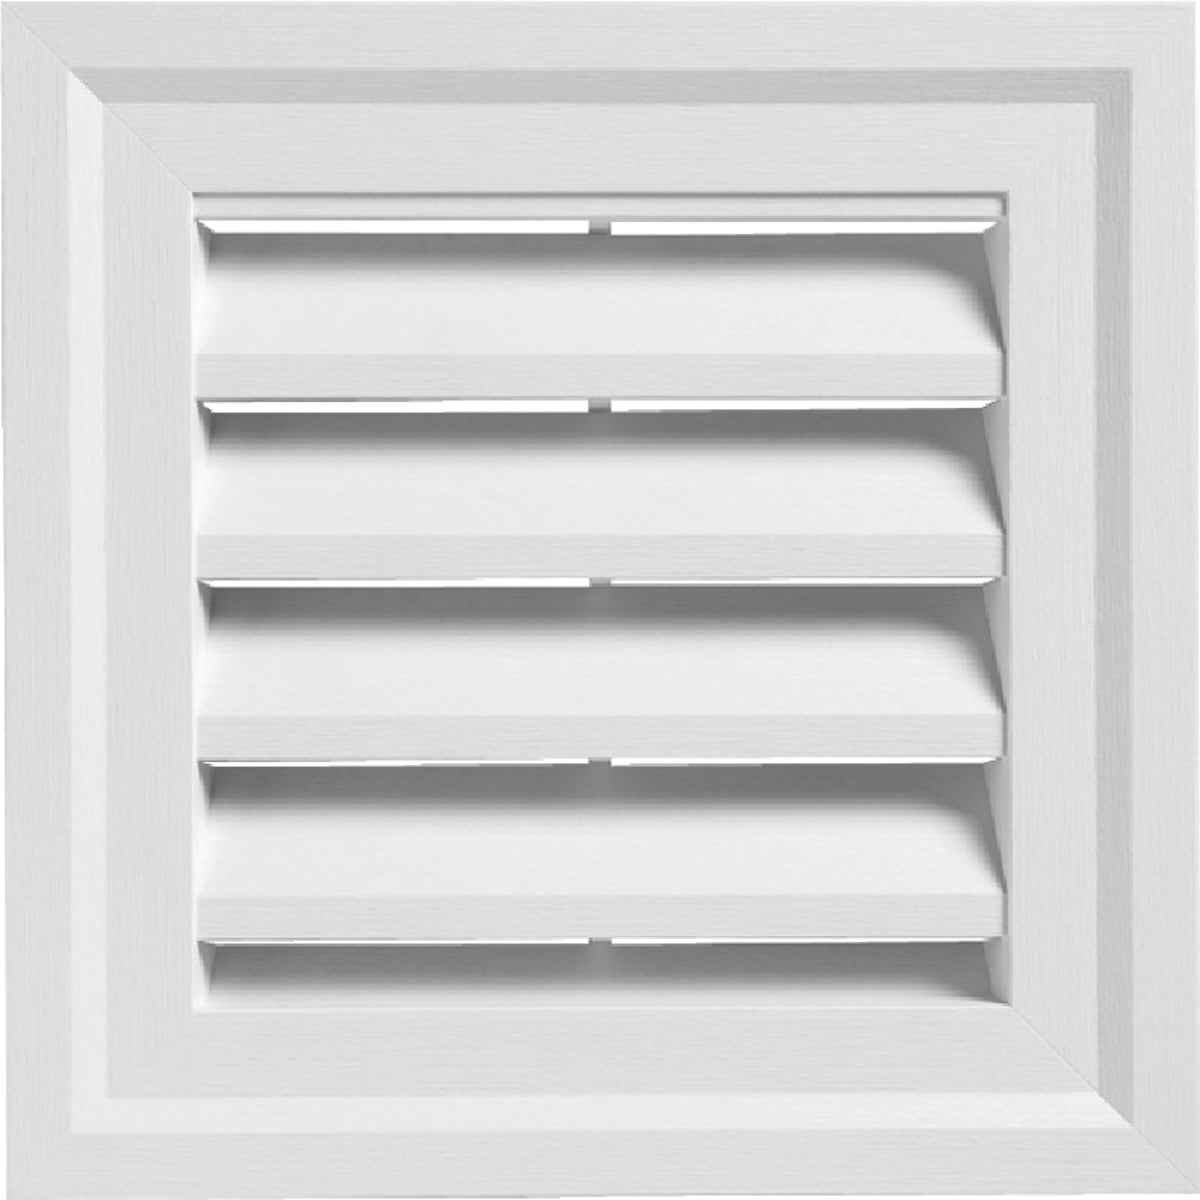 WHITE SQUARE GABLE VENT